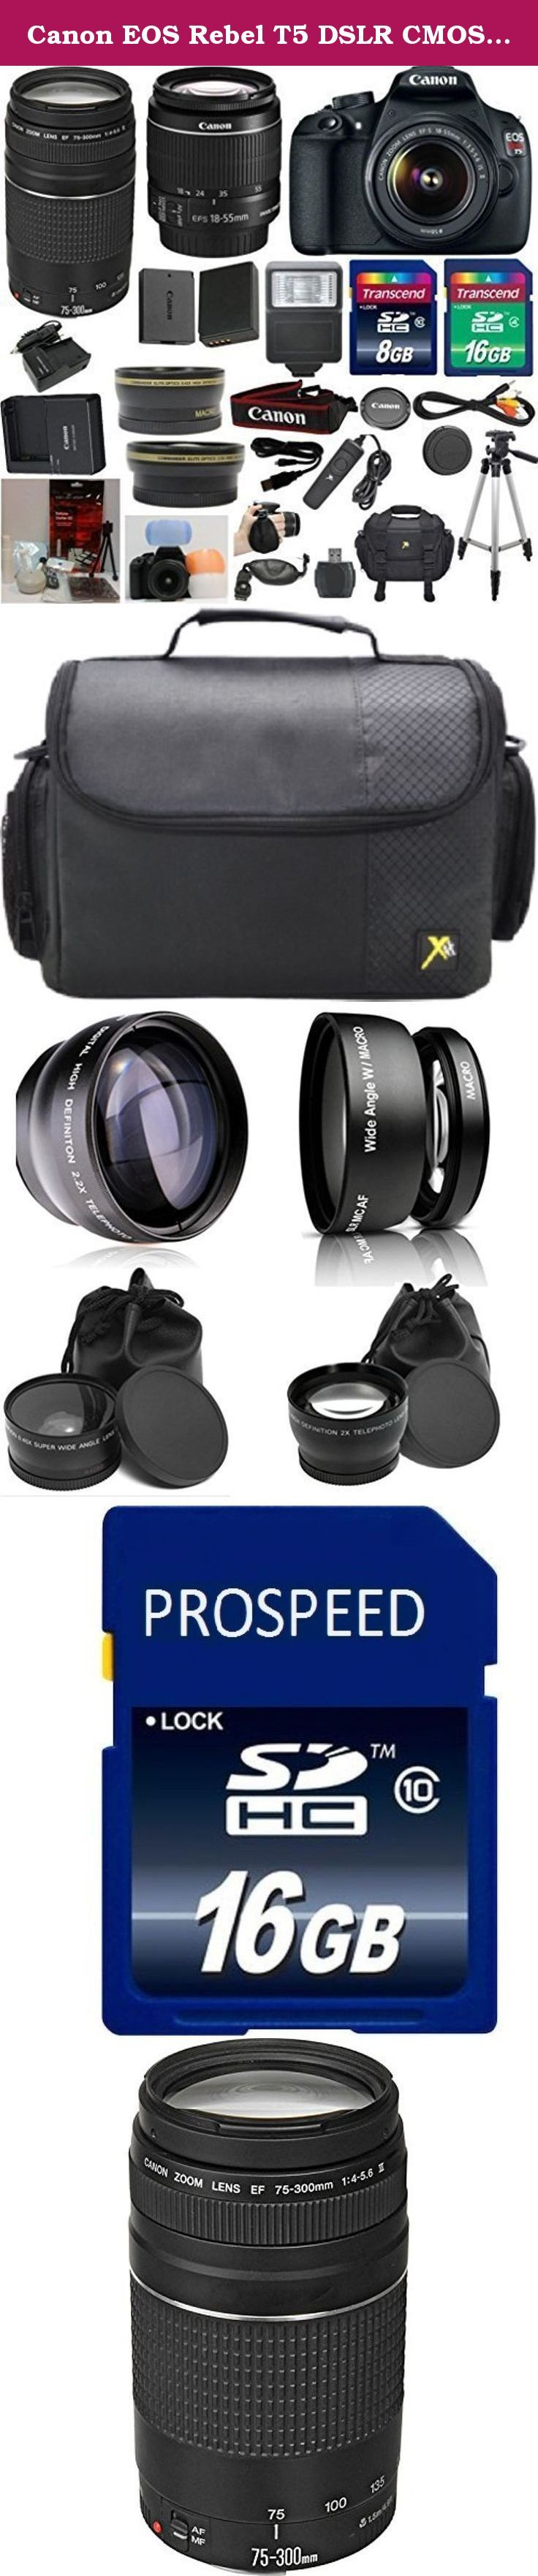 Canon EOS Rebel T5 DSLR CMOS Digital SLR Camera and DIGIC Imaging 33rd Street Bundle with EF-S 18-55mm f/3.5-5.6 IS Lens + Canon 75-300mm III Zoom Lens + Wide Angle Auxiliary Lens + Telephoto Auxiliary Lens + Extra High Capacity Battery + Extra Worldwide Use Charger + Digital Flash + 6pc Commander Starter Kit + 24GB Accessory Kit. This 33rd Street Bundle Includes: Canon T5 Camera Body Canon 18-55mm IS Standard Zoom Lens Canon 75-300mm III Zoom Lens Commander Wide Angle Auxiliary Lens...